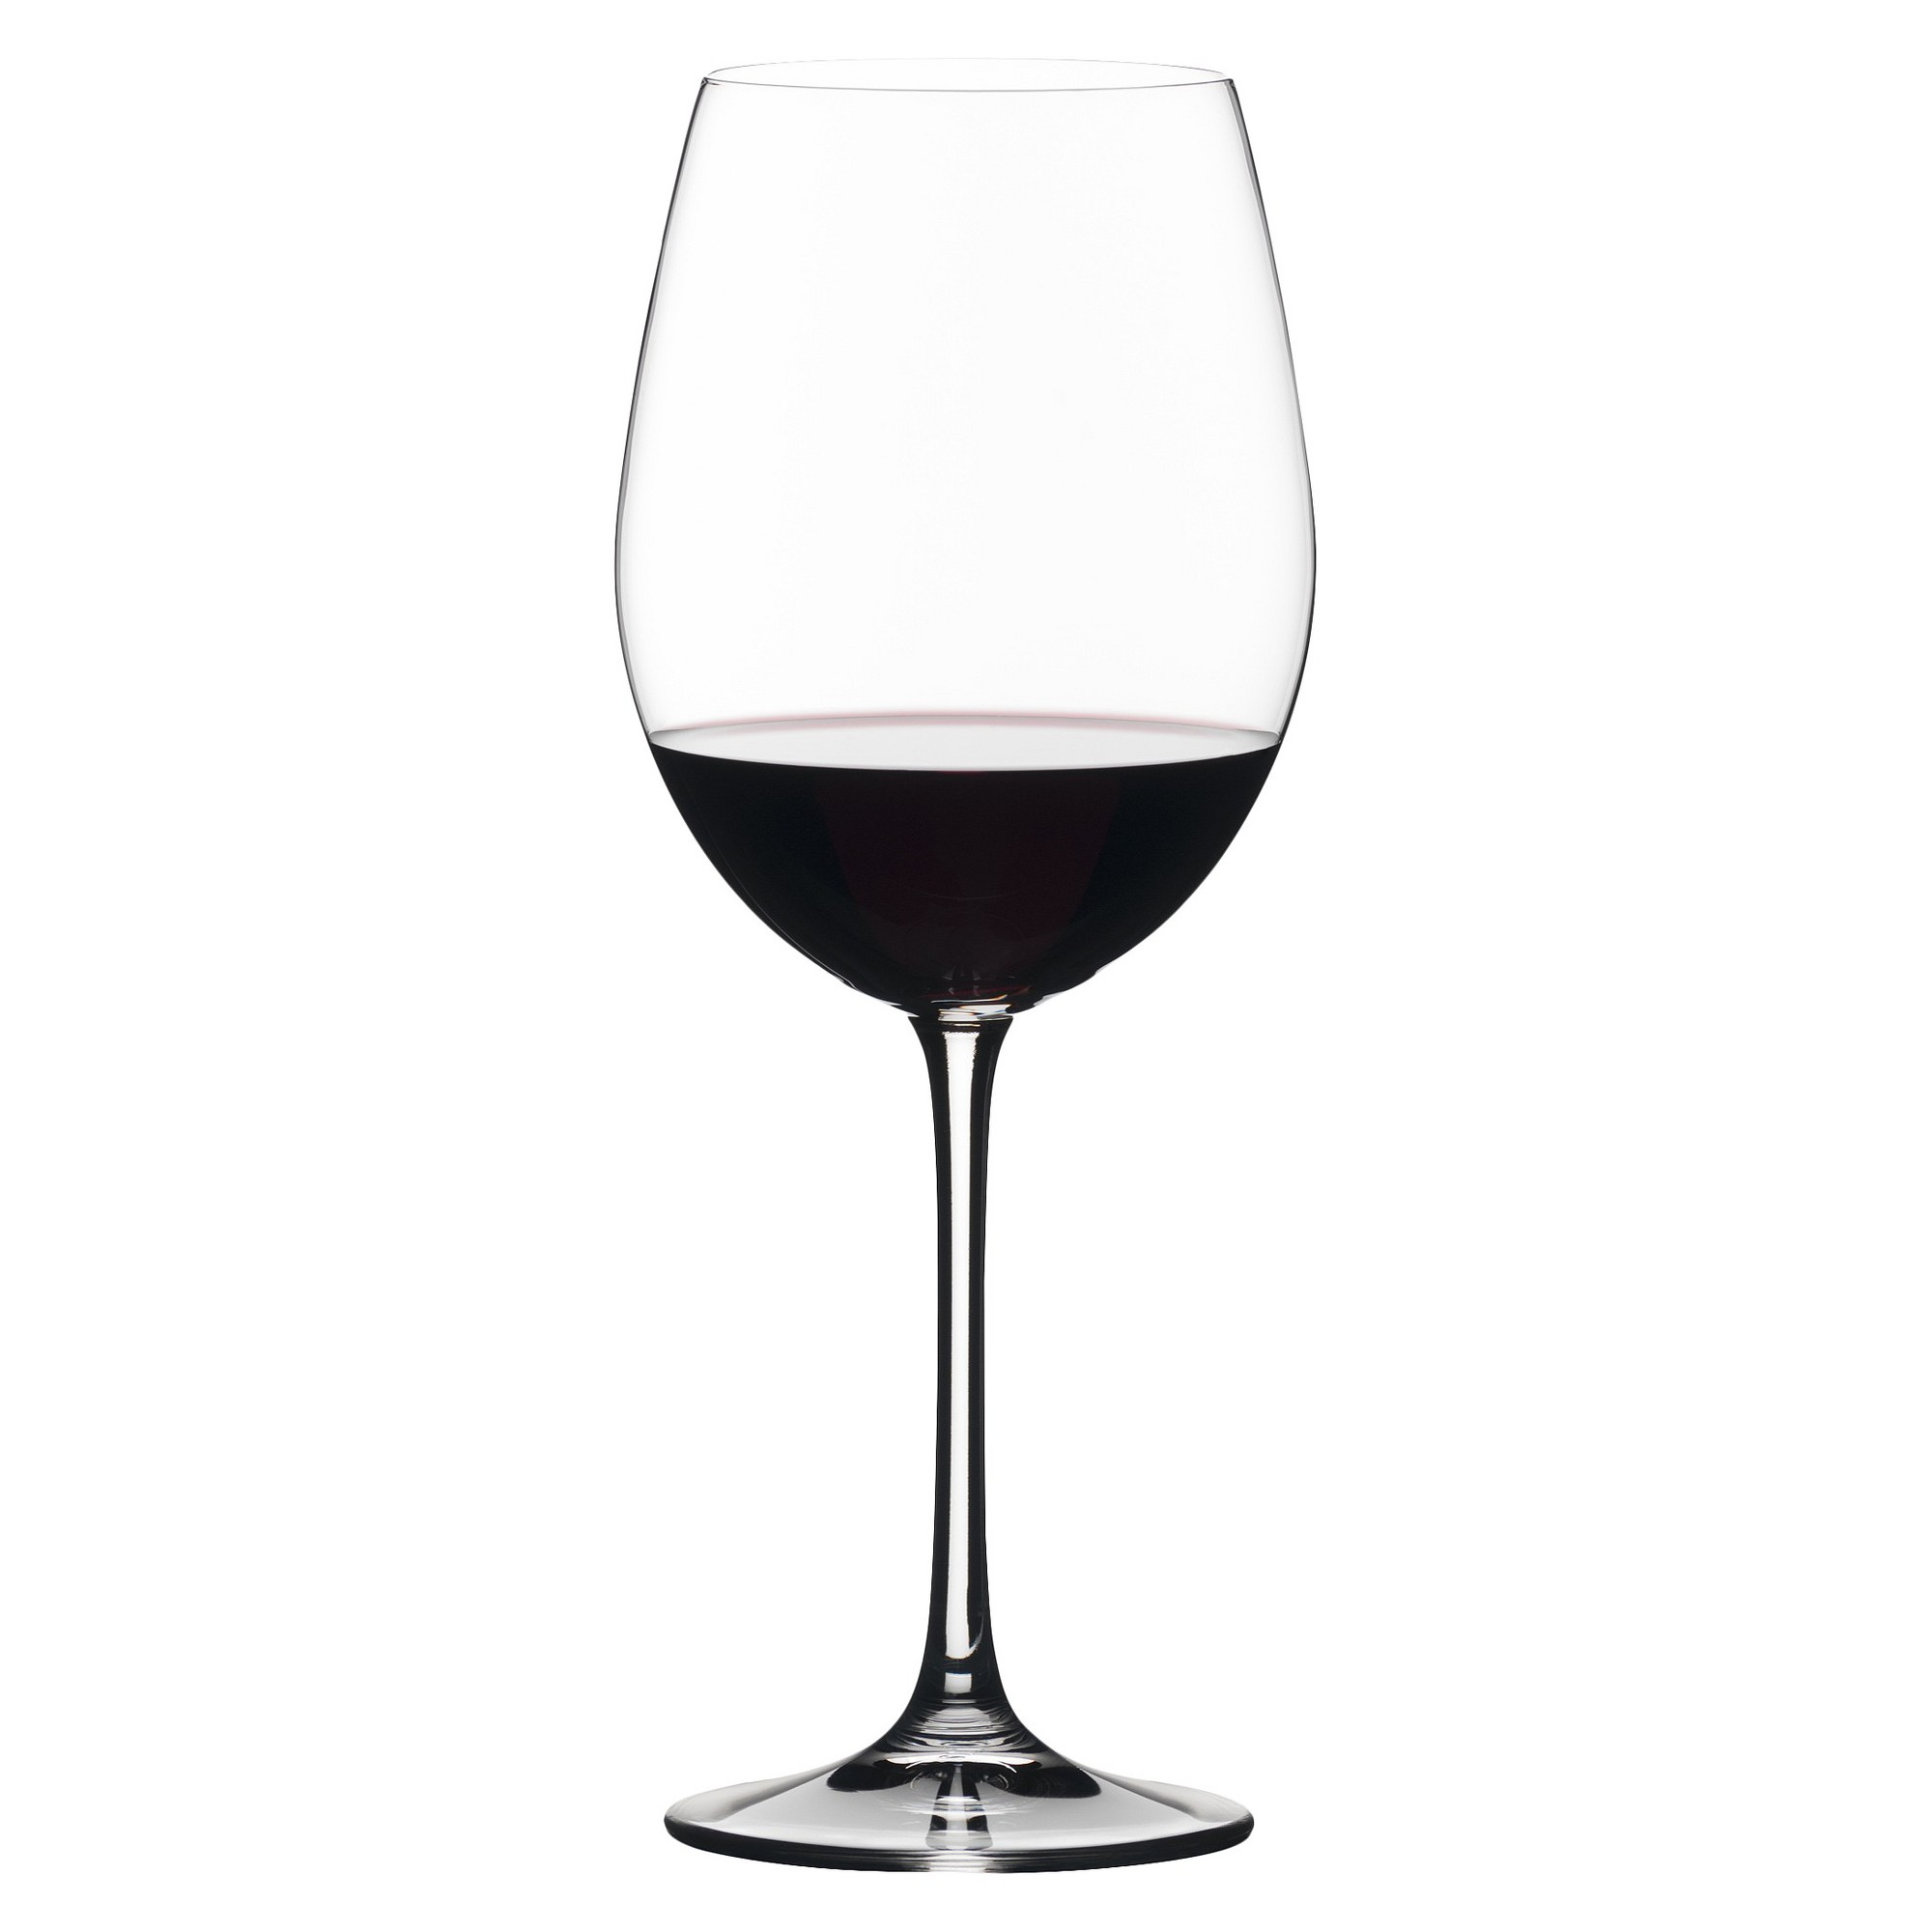 Riedel Vivant 12.5oz 2pk Bordeaux Wine Glasses, Clear